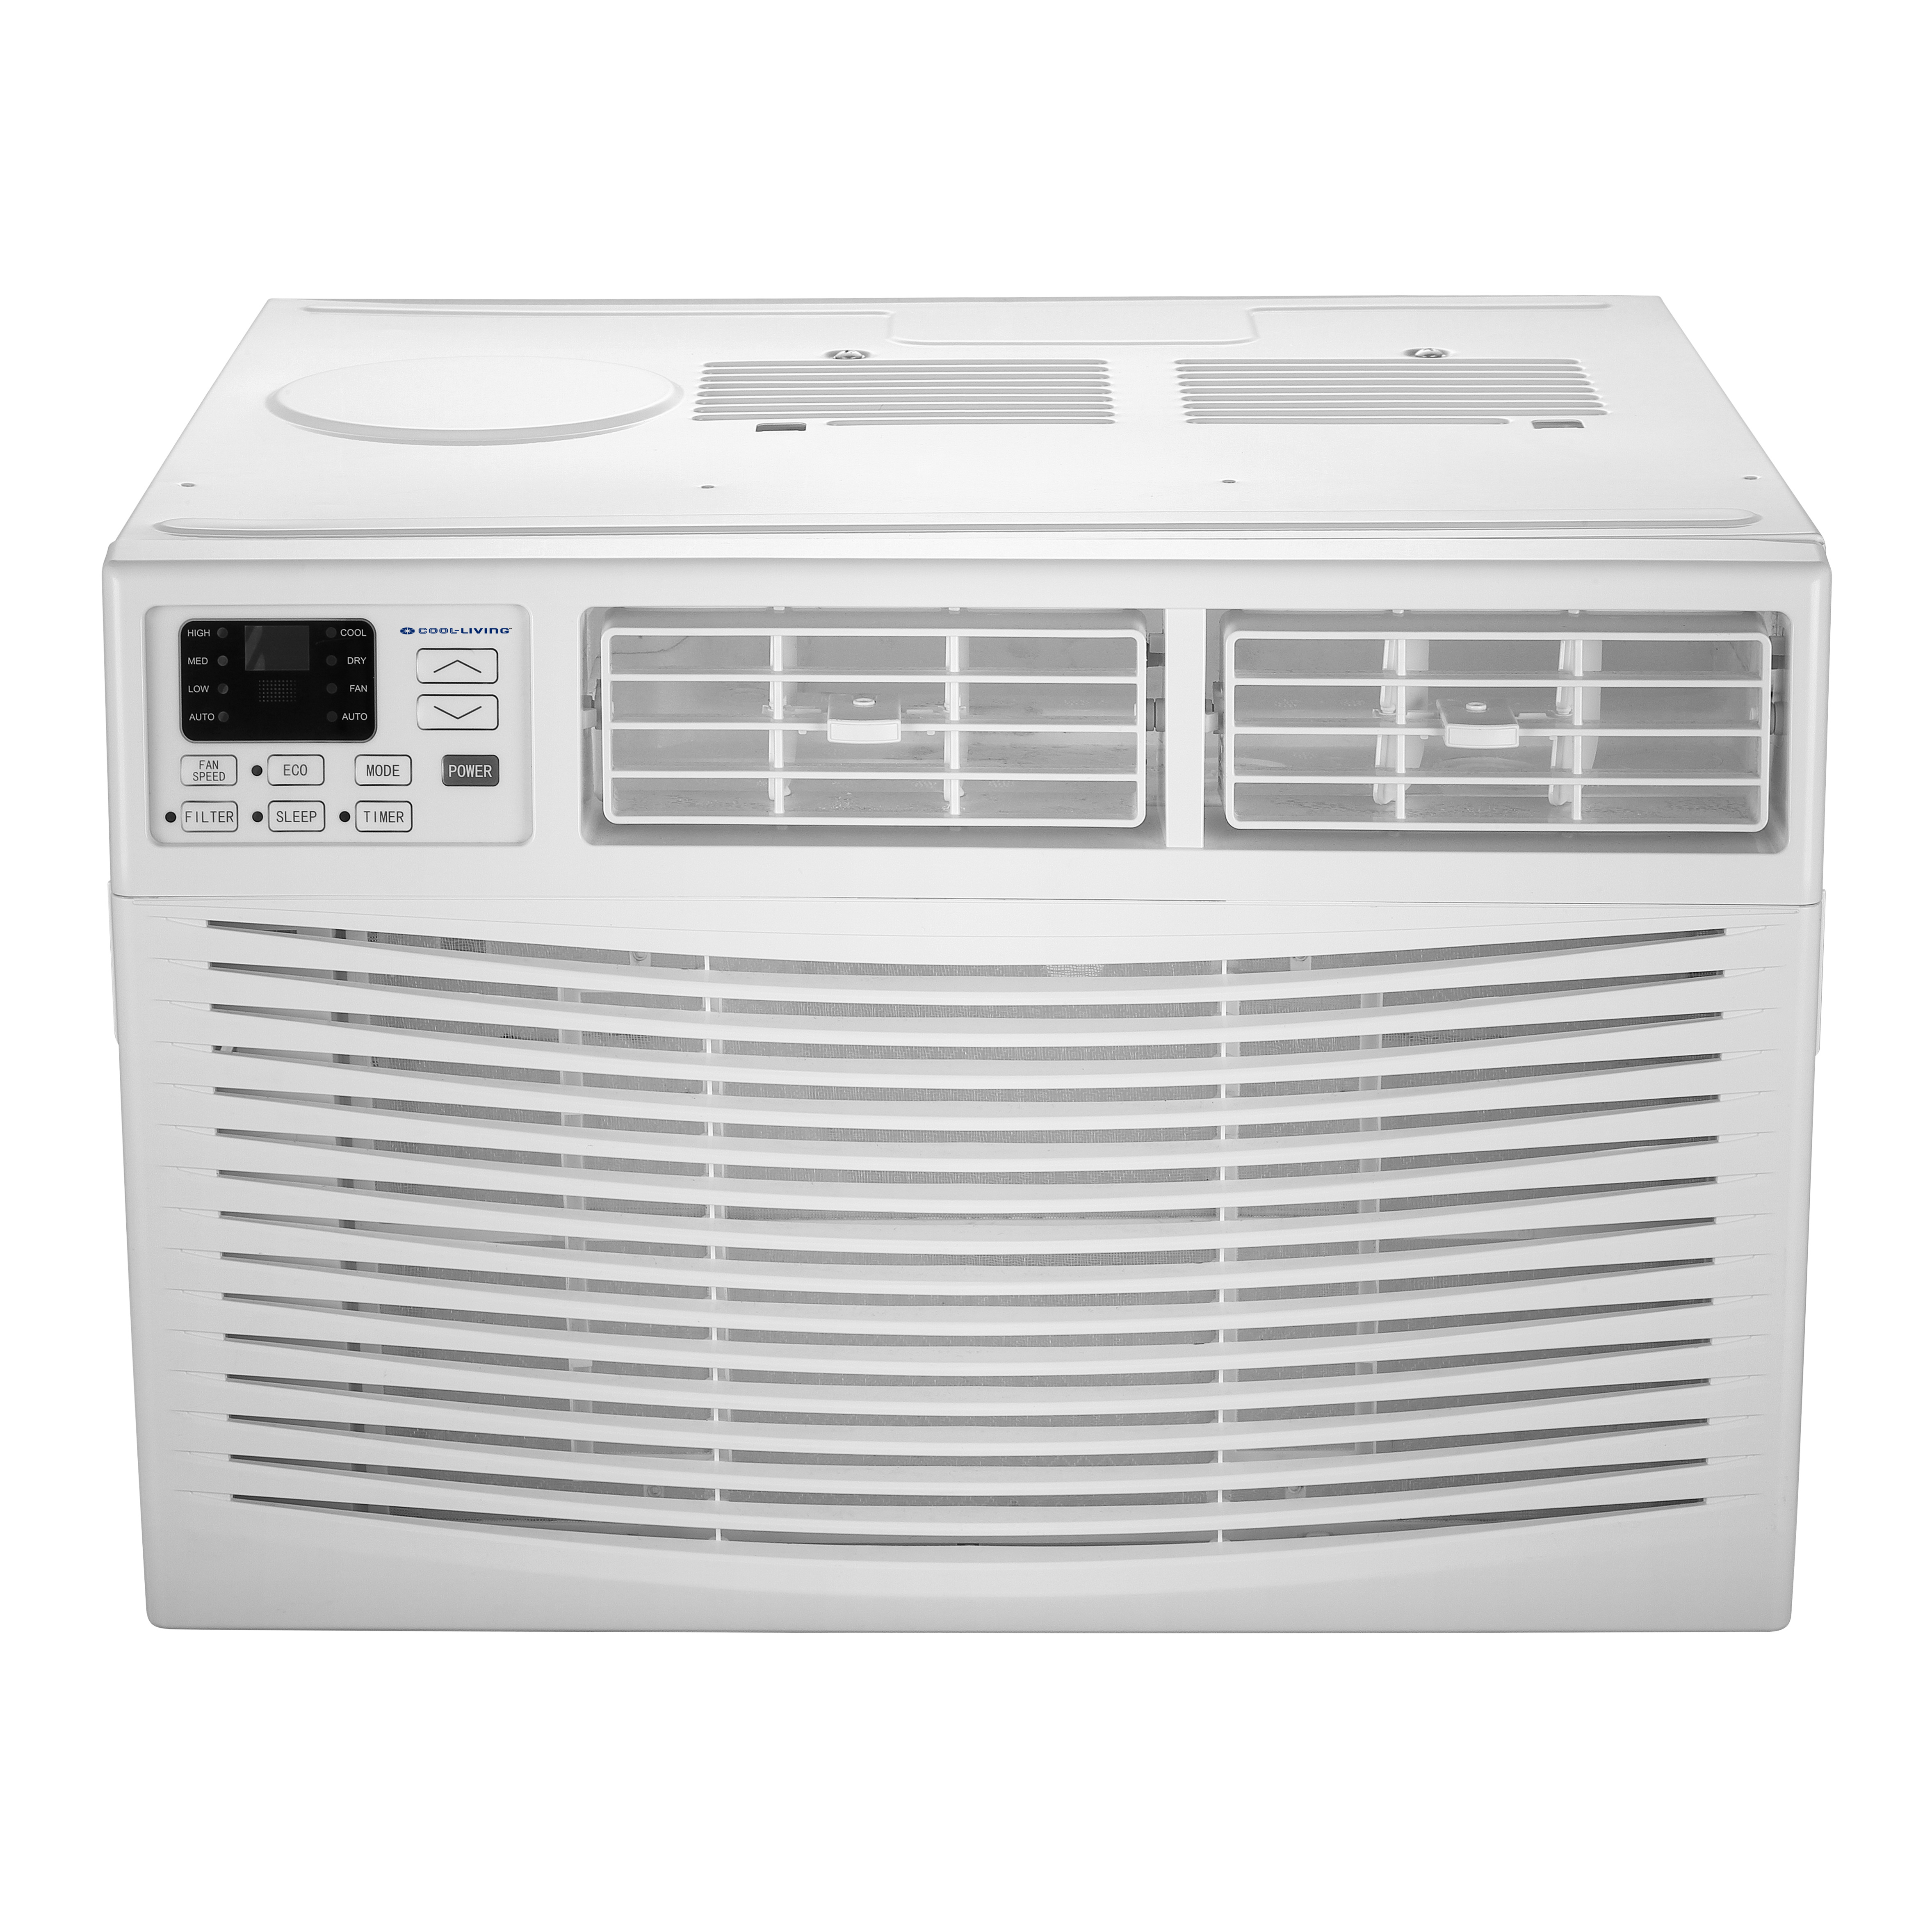 Cool Living 10,000-BTU Window-Mounted Room Air Conditioner with Digital Display and Remote, White